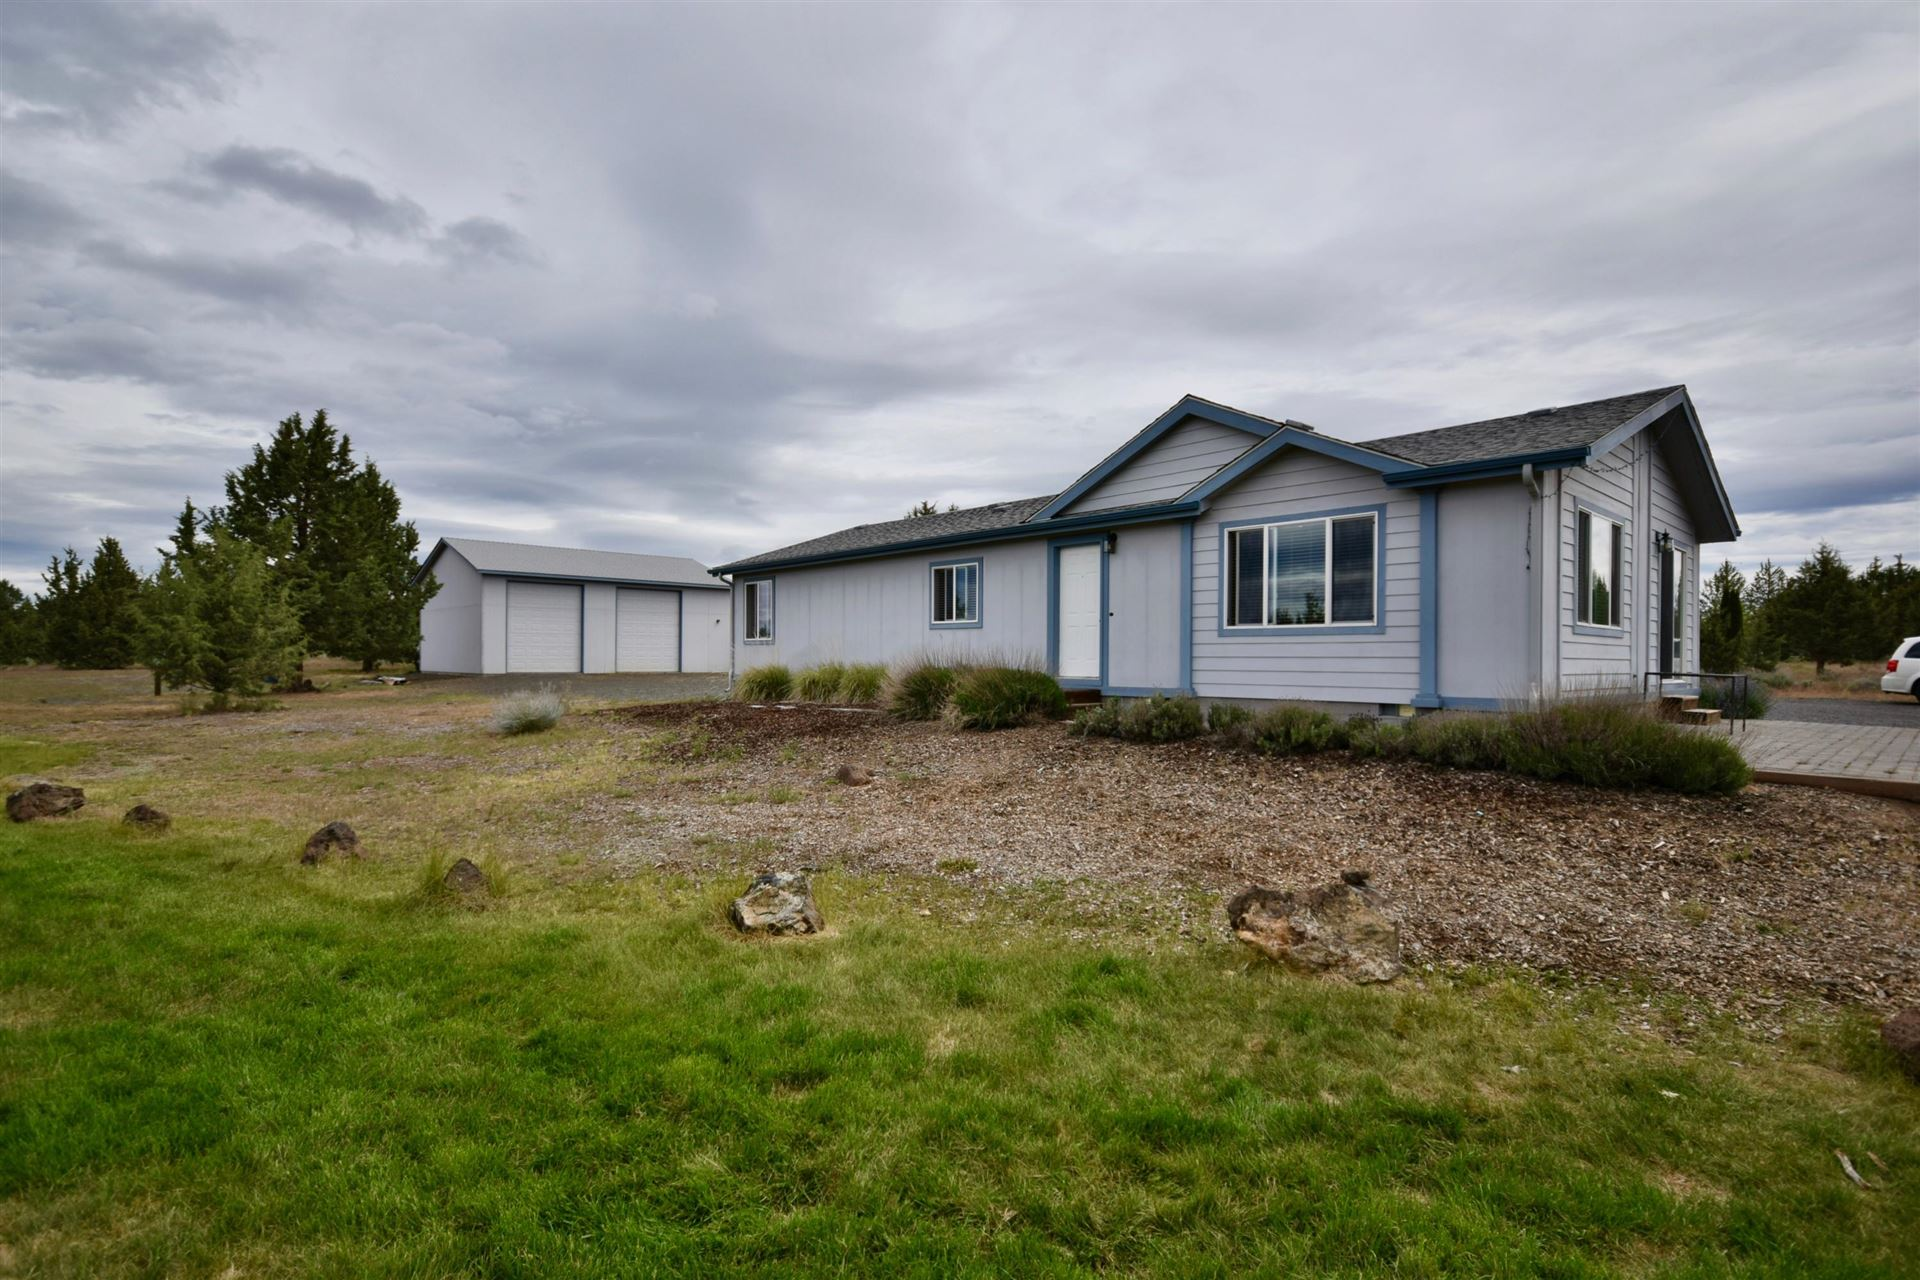 Photo of 7270 SW Shad Road, Terrebonne, OR 97760 (MLS # 220101759)